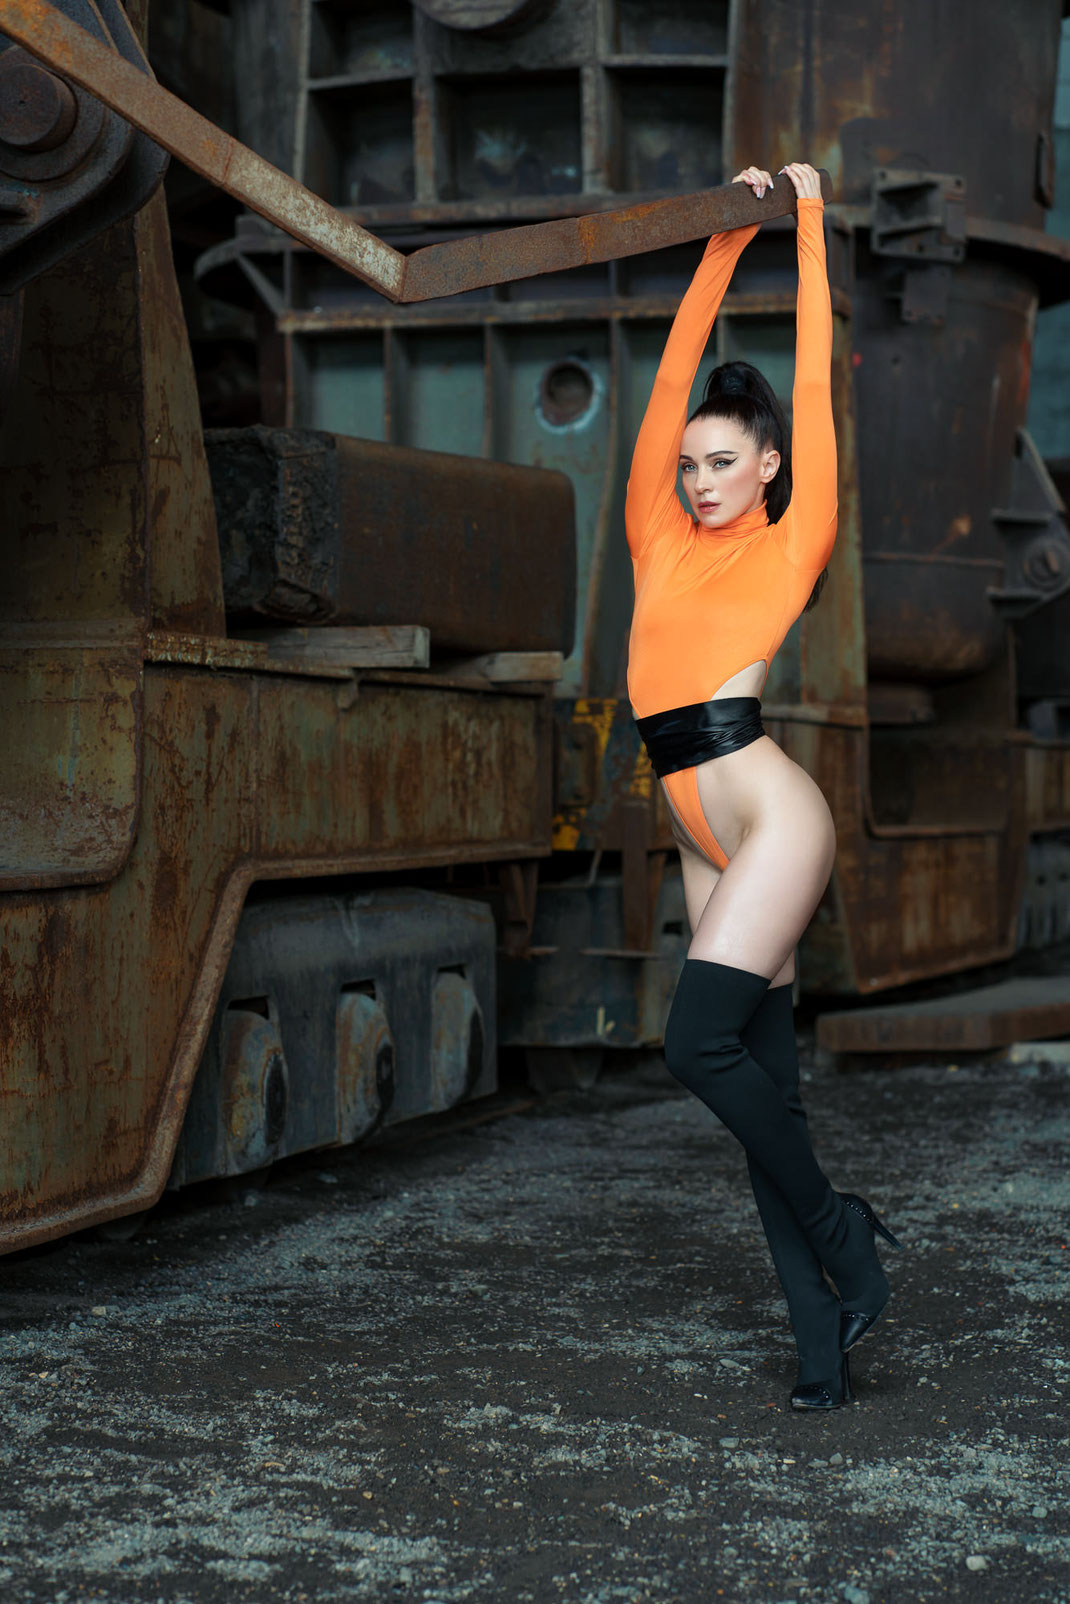 The Song of the Nibelungs - Angélique - Markus Hertzsch - Art - Model - Martine Brun - Jewelry - Body - Iron - Queen - Knight - Portrait